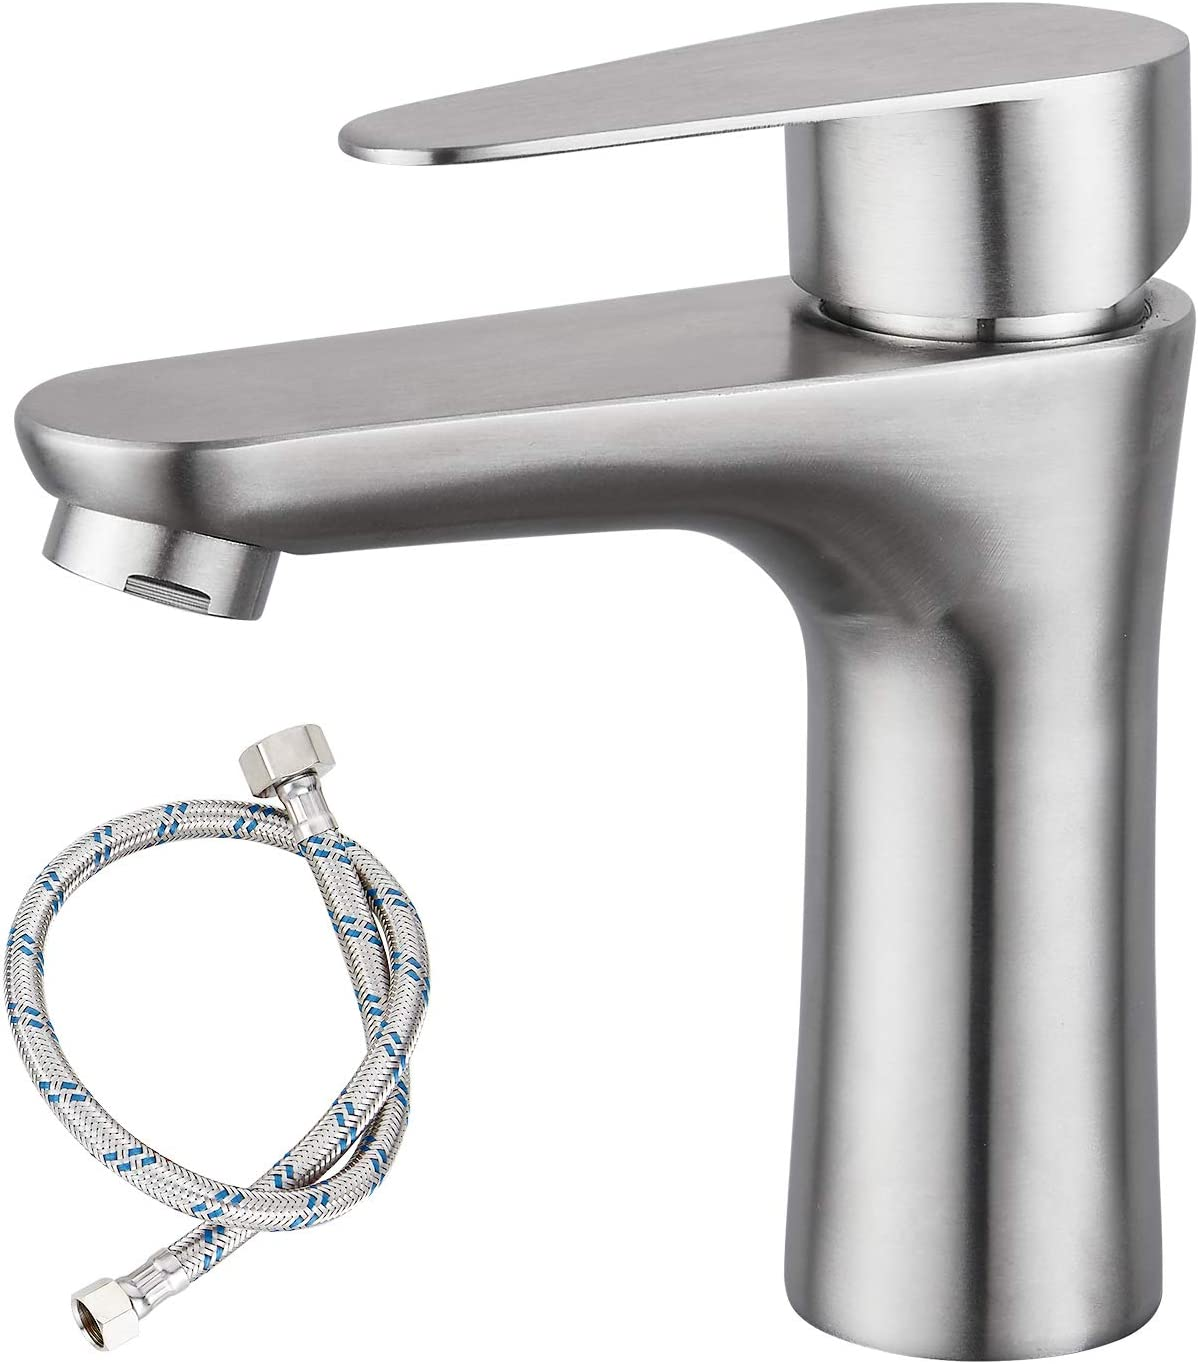 Brushed Nickel Bathroom Faucet Cold Water Only SUS304 Stainless Steel Single Handle One Hole Deck Mounted Lavatory Tap Single Switch 3/8